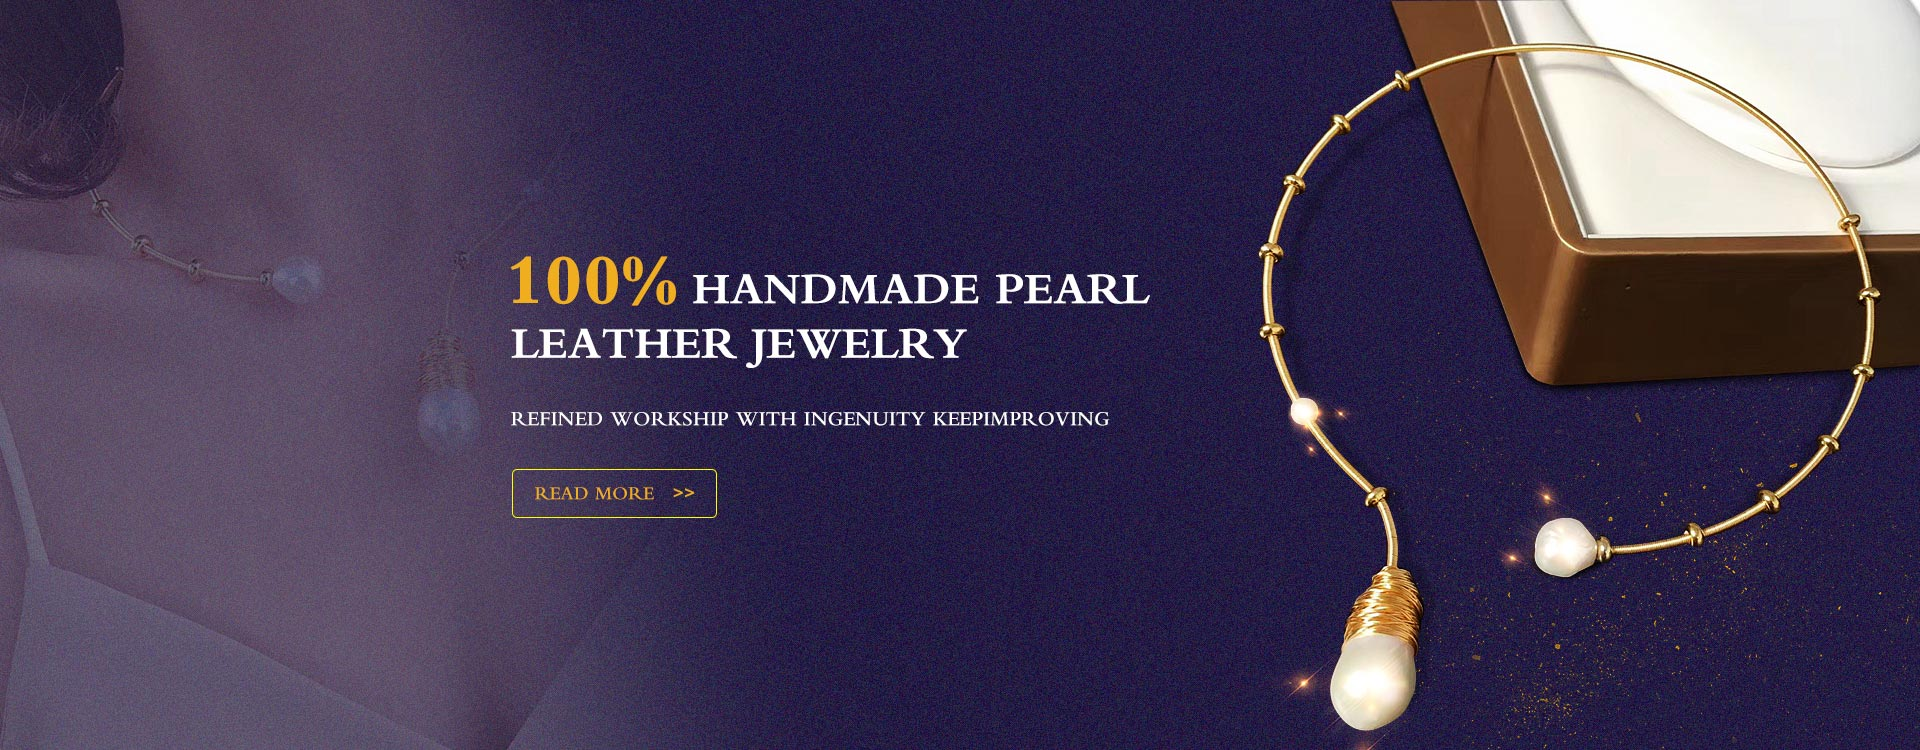 handmade pearl  leather jewelry